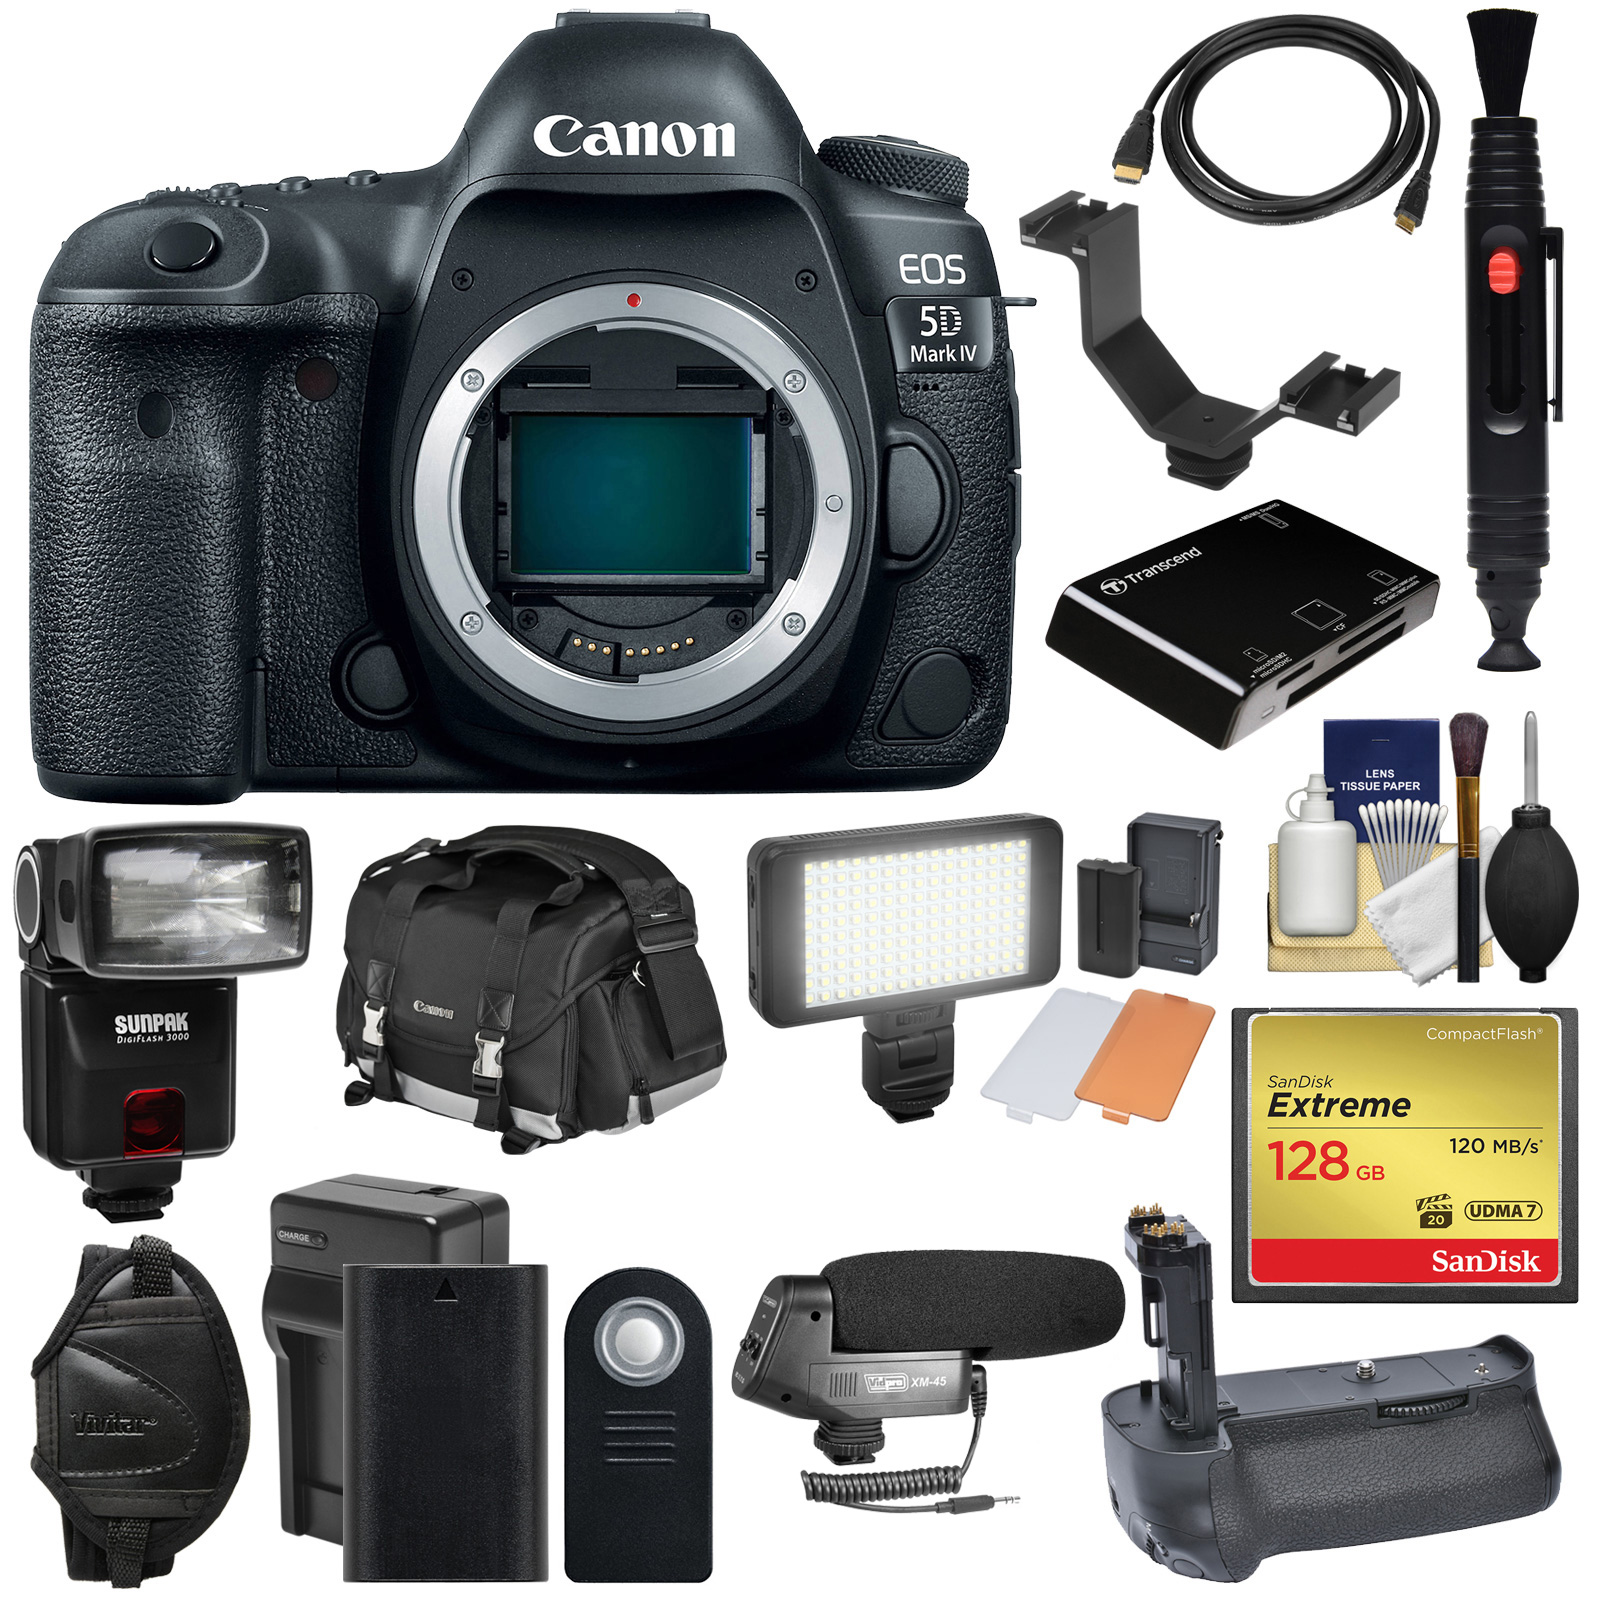 Canon EOS 5D Mark IV 4K Wi-Fi Digital SLR Camera Body with 128GB CF Card + Battery & Charger + Grip + Case + Flash + LED Light + Mic + Kit